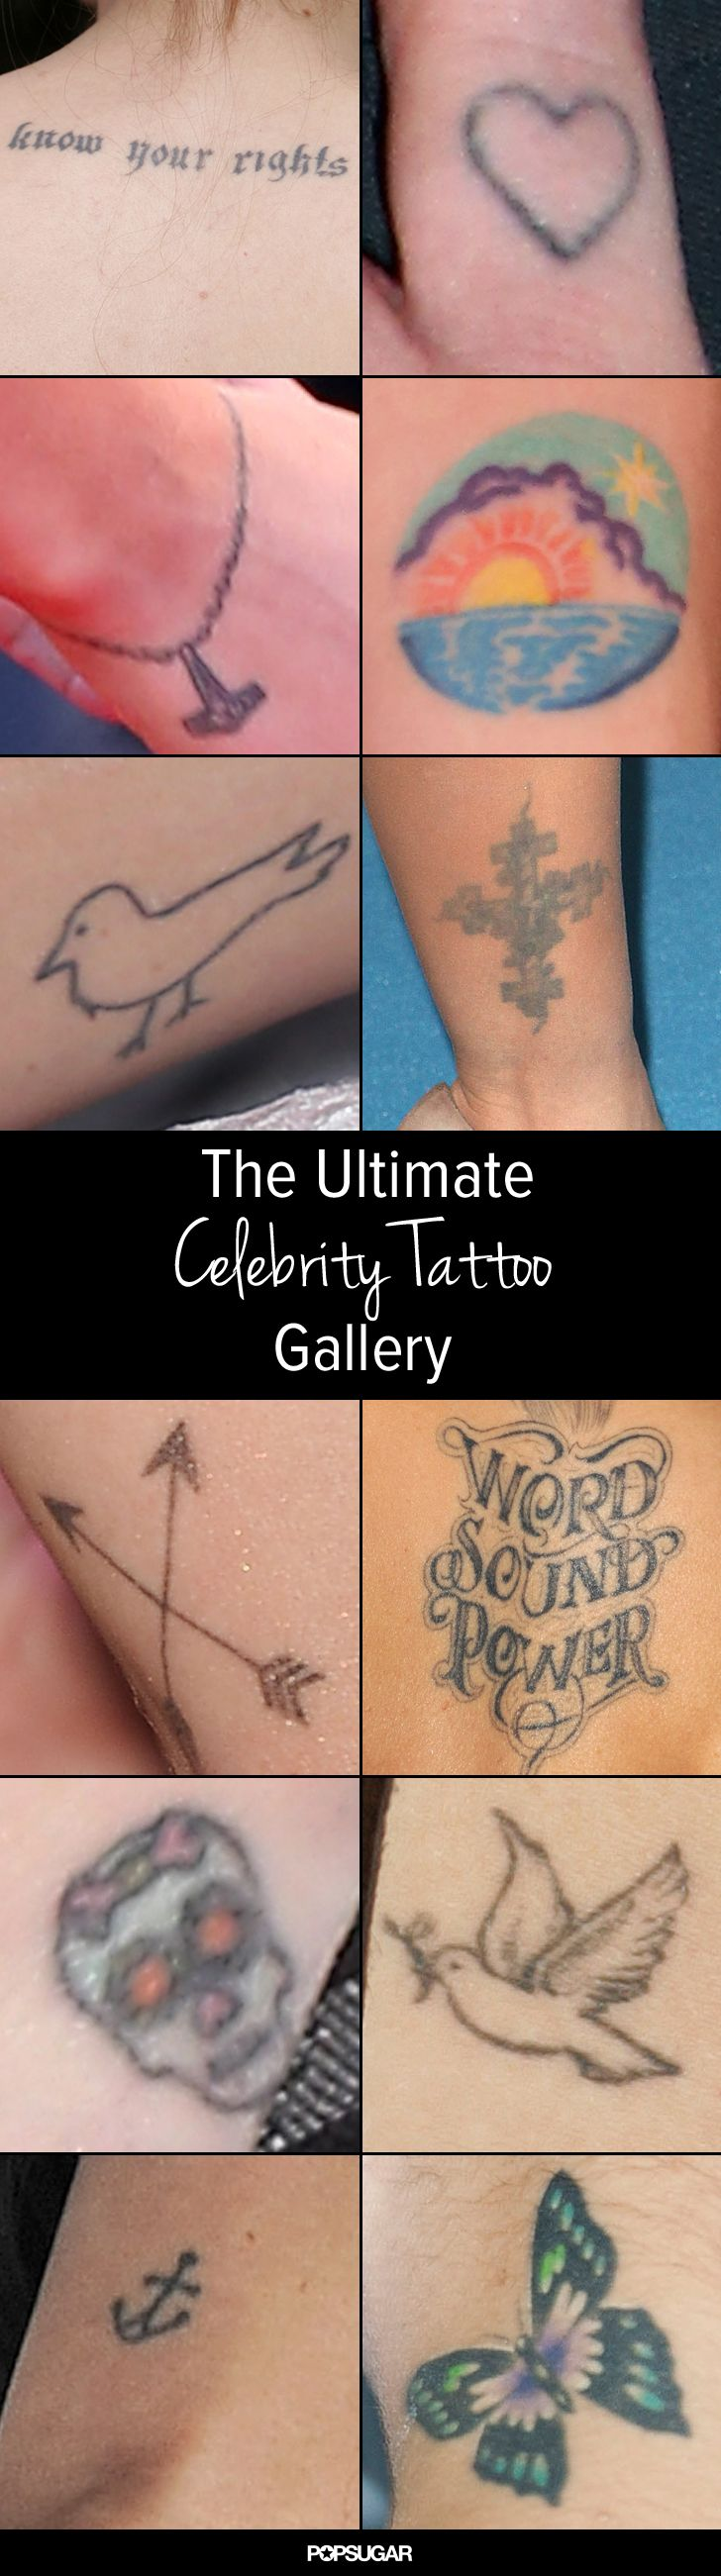 Need some ink inspiration? Check out the ultimate celebrity tattoo roundup!